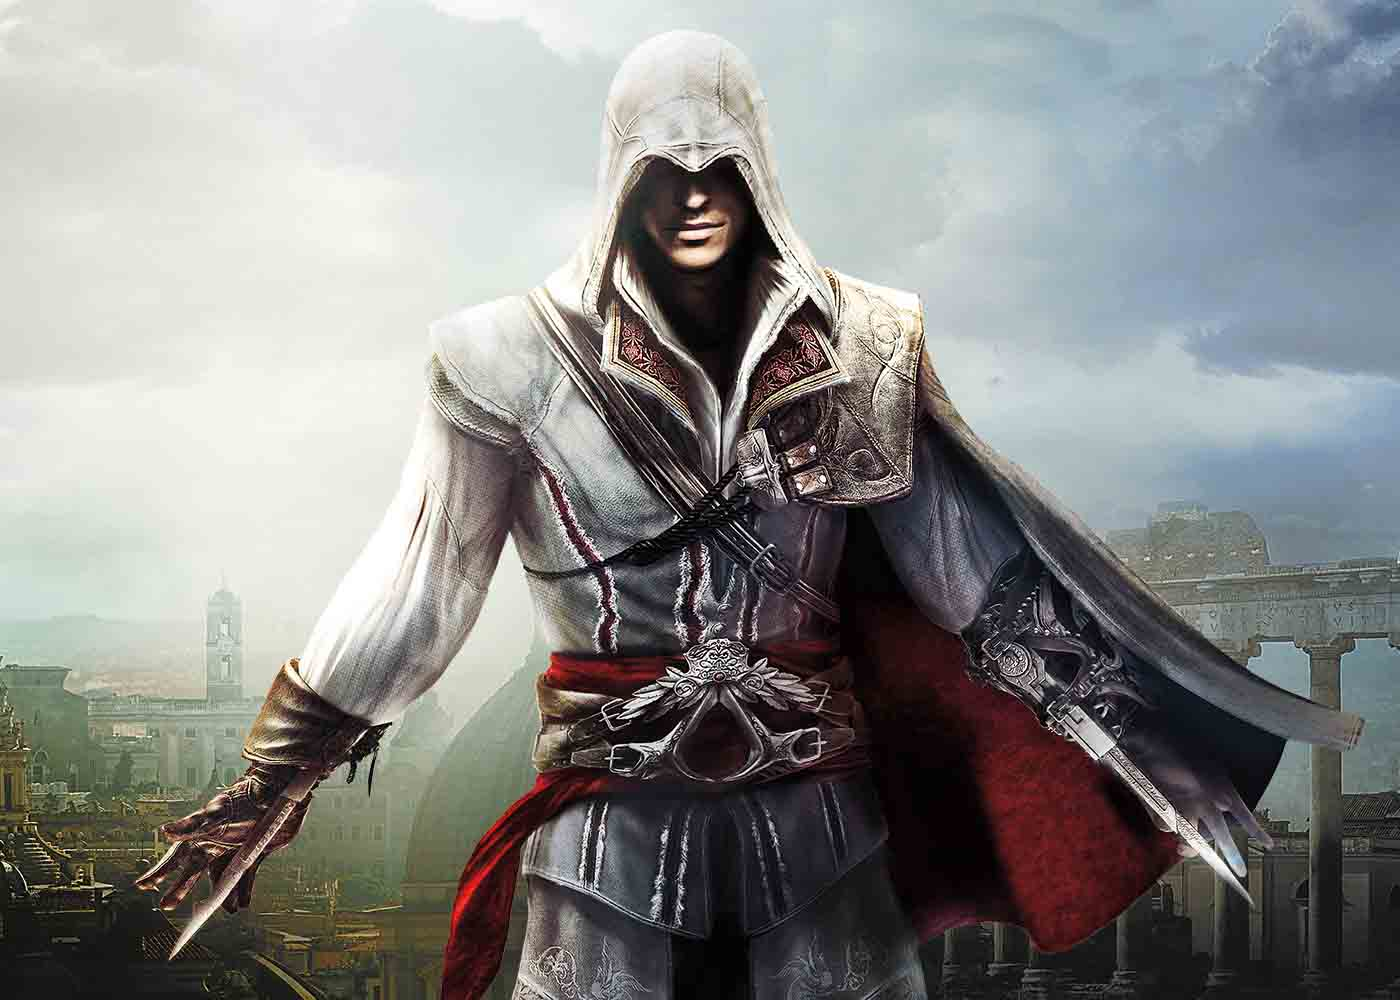 Live-Action Assassin's Creed Series Announced by Netflix